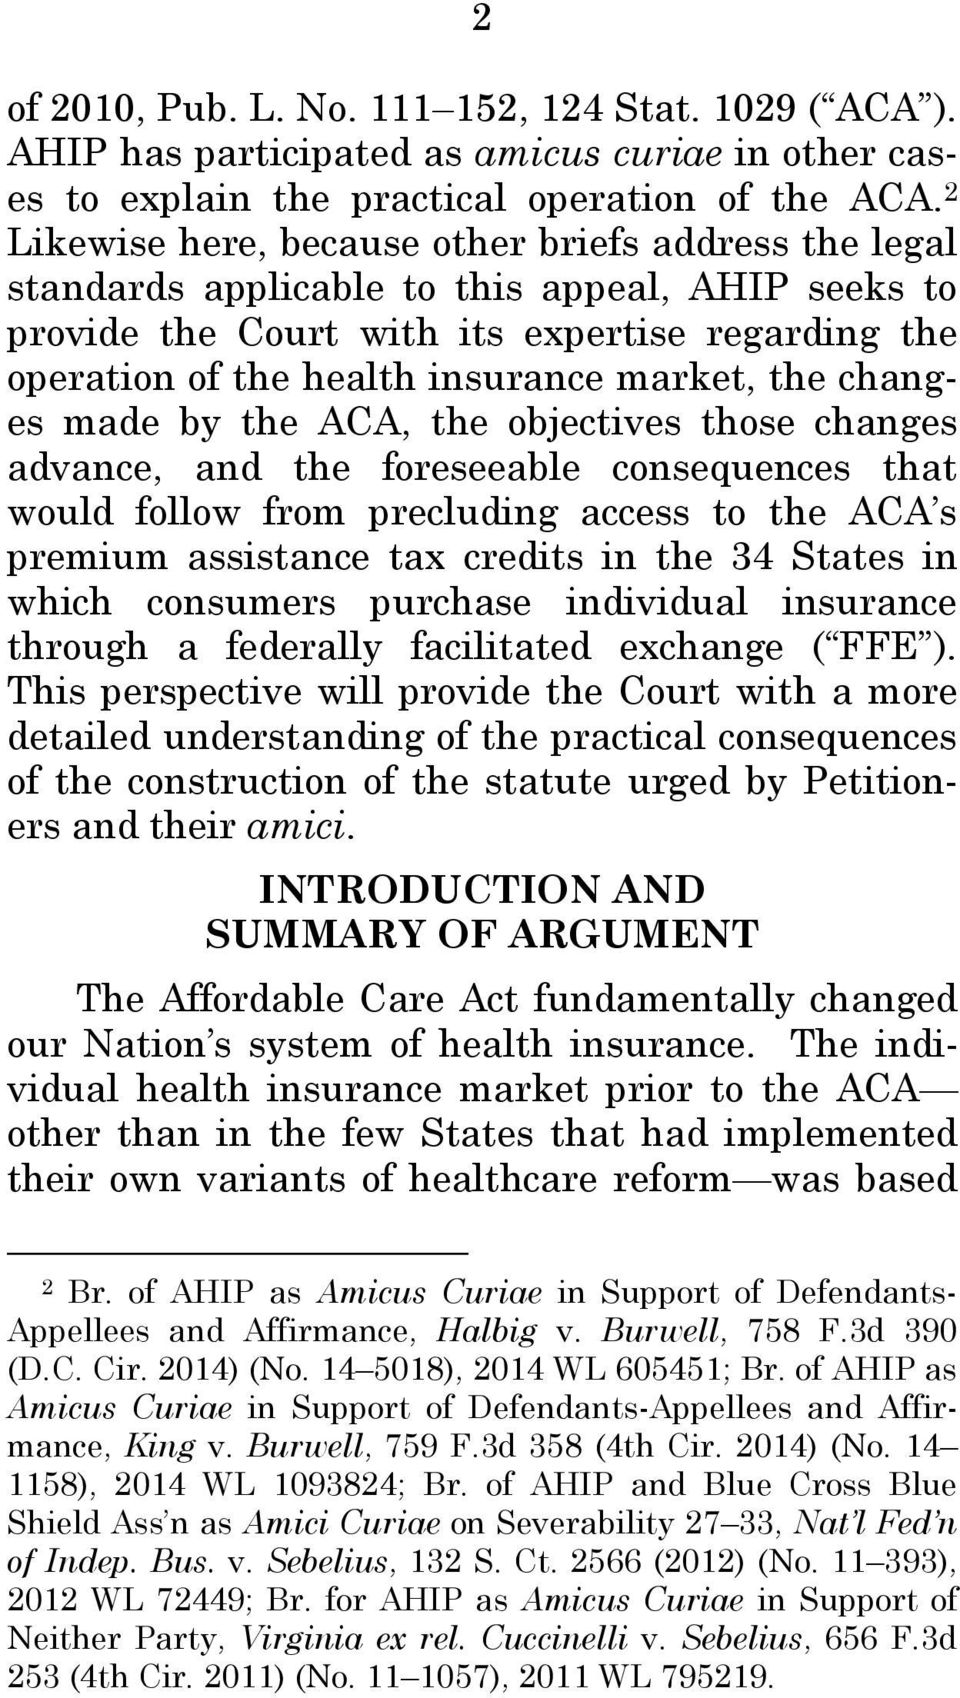 the changes made by the ACA, the objectives those changes advance, and the foreseeable consequences that would follow from precluding access to the ACA s premium assistance tax credits in the 34